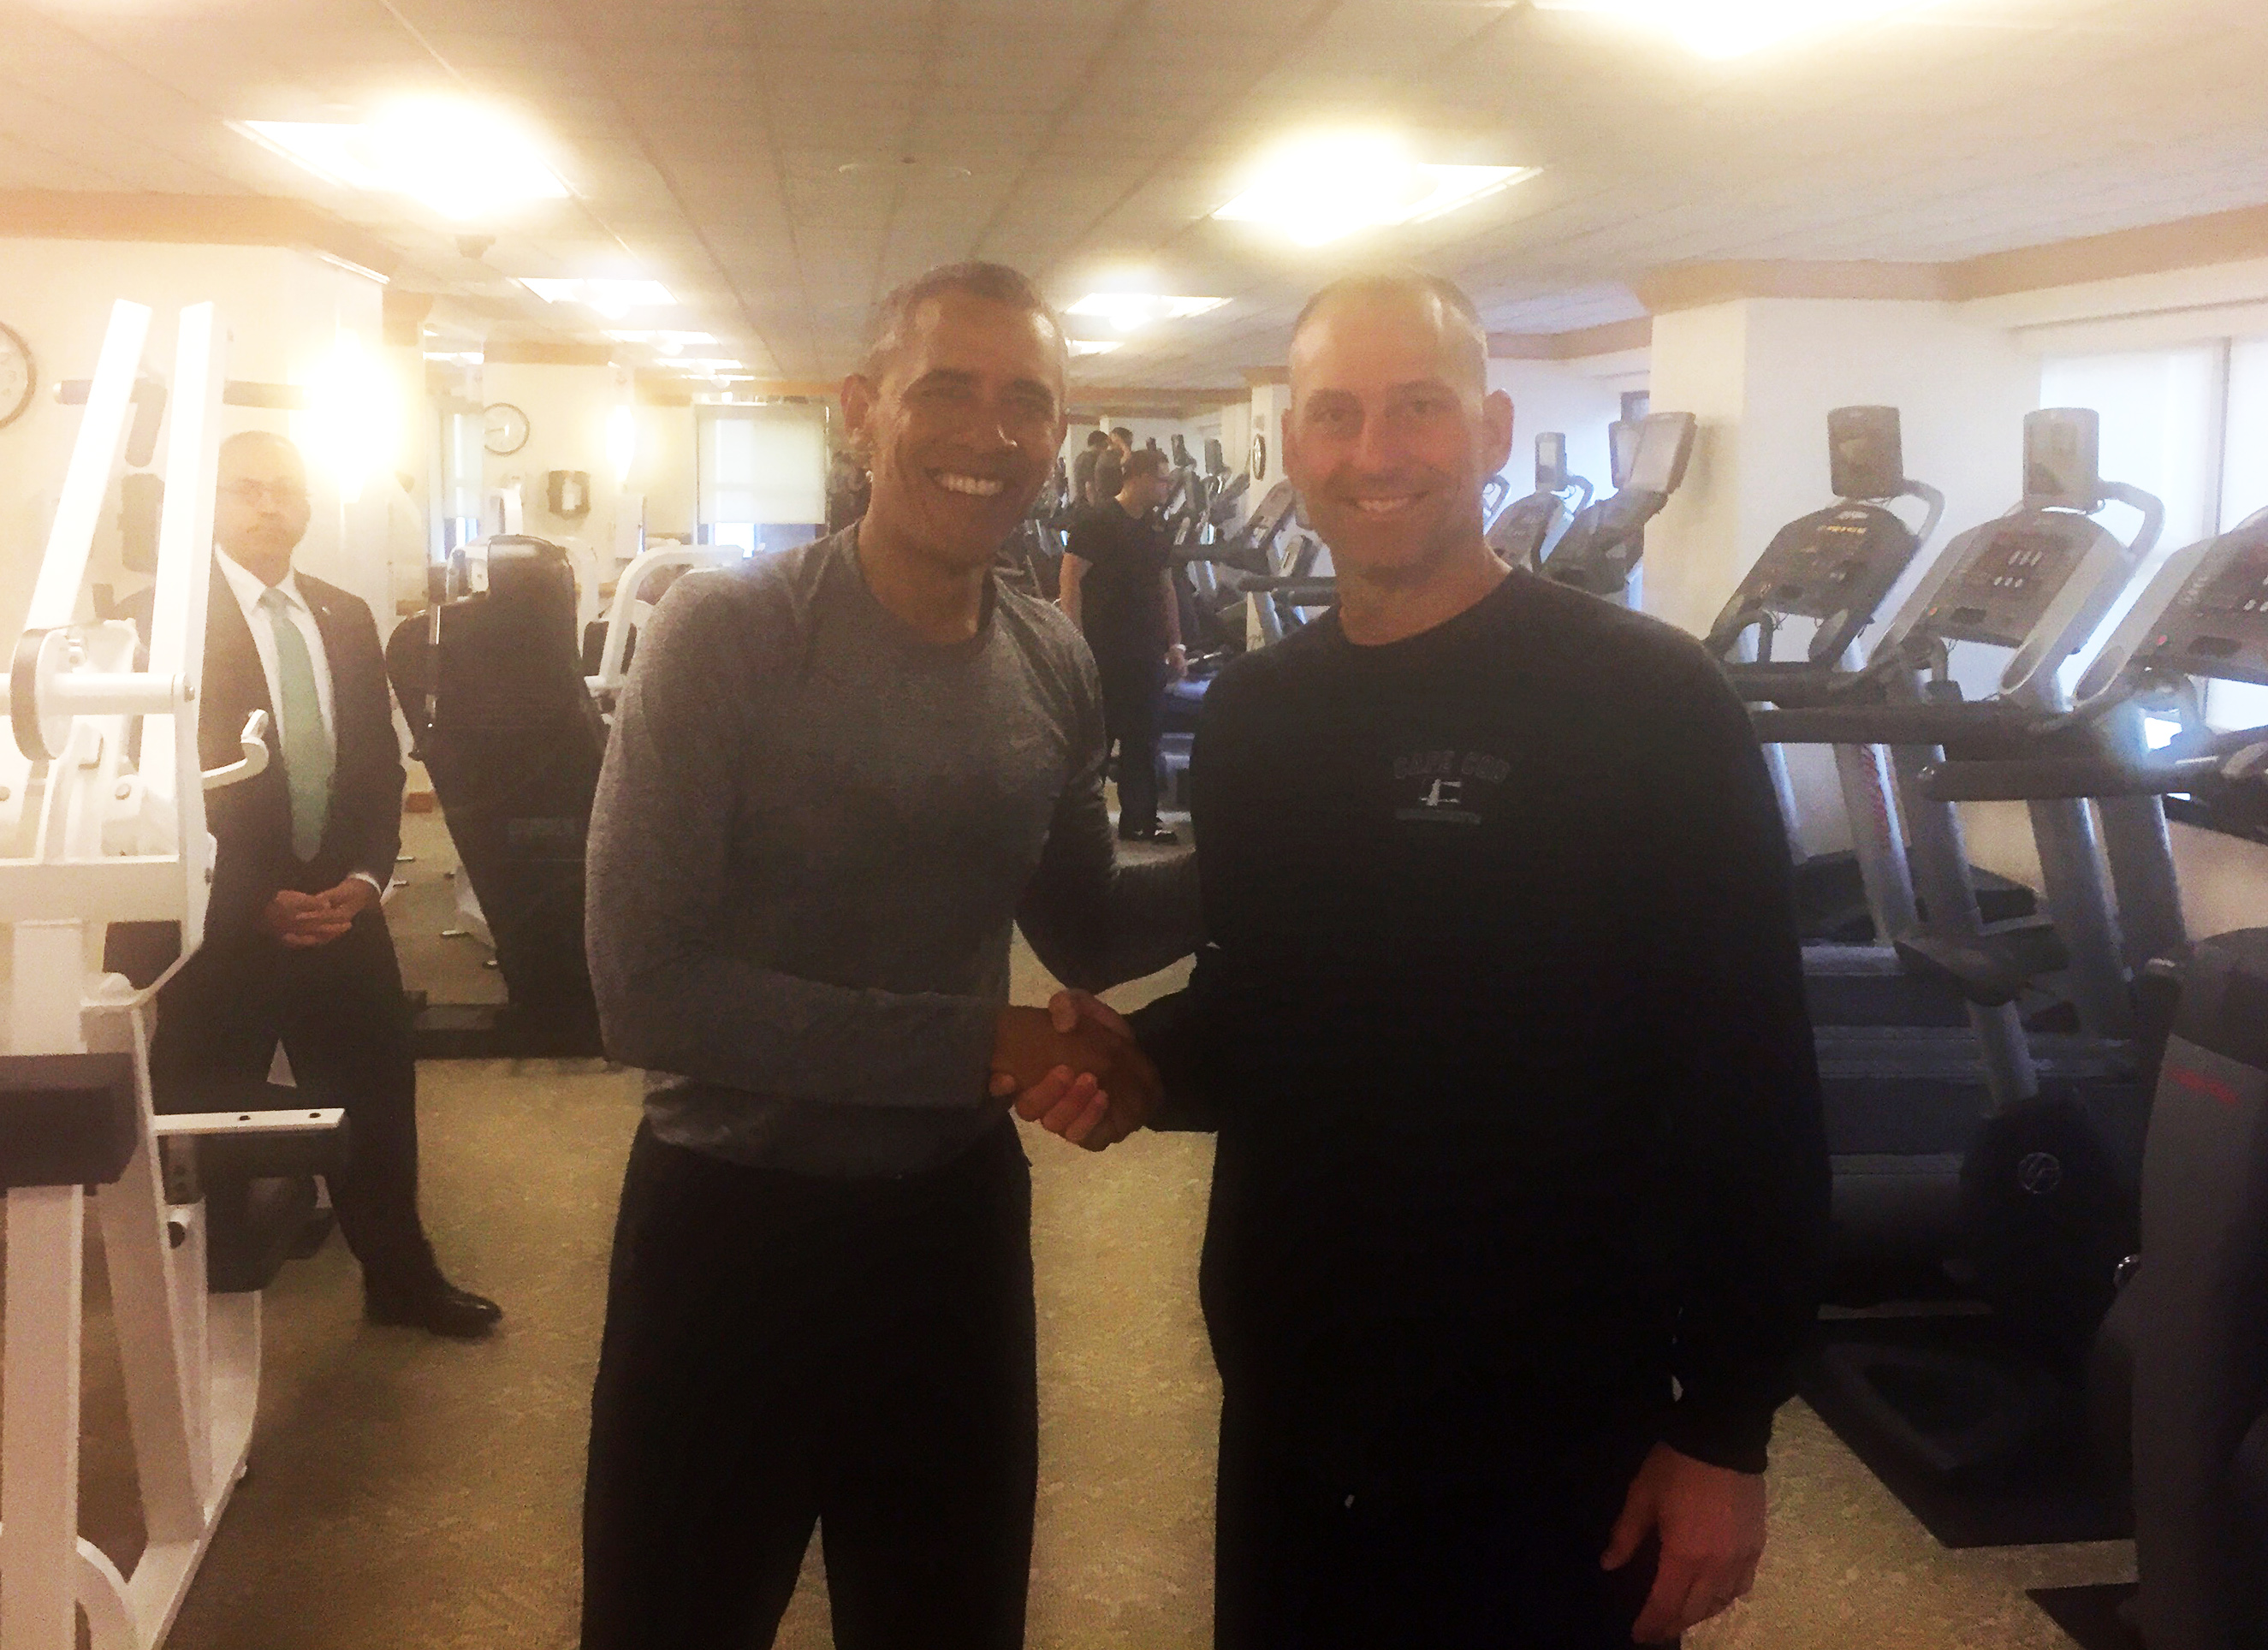 In this photo provided by the Boston Red Sox, President Barack Obama, left, shakes hands with Boston Red Sox Interim Manager Torey Lovullo in the exercise room of the New York Palace Hotel, Tuesday, Sept. 29, 2015, in New York. (Mike Hazen/Boston Red Sox